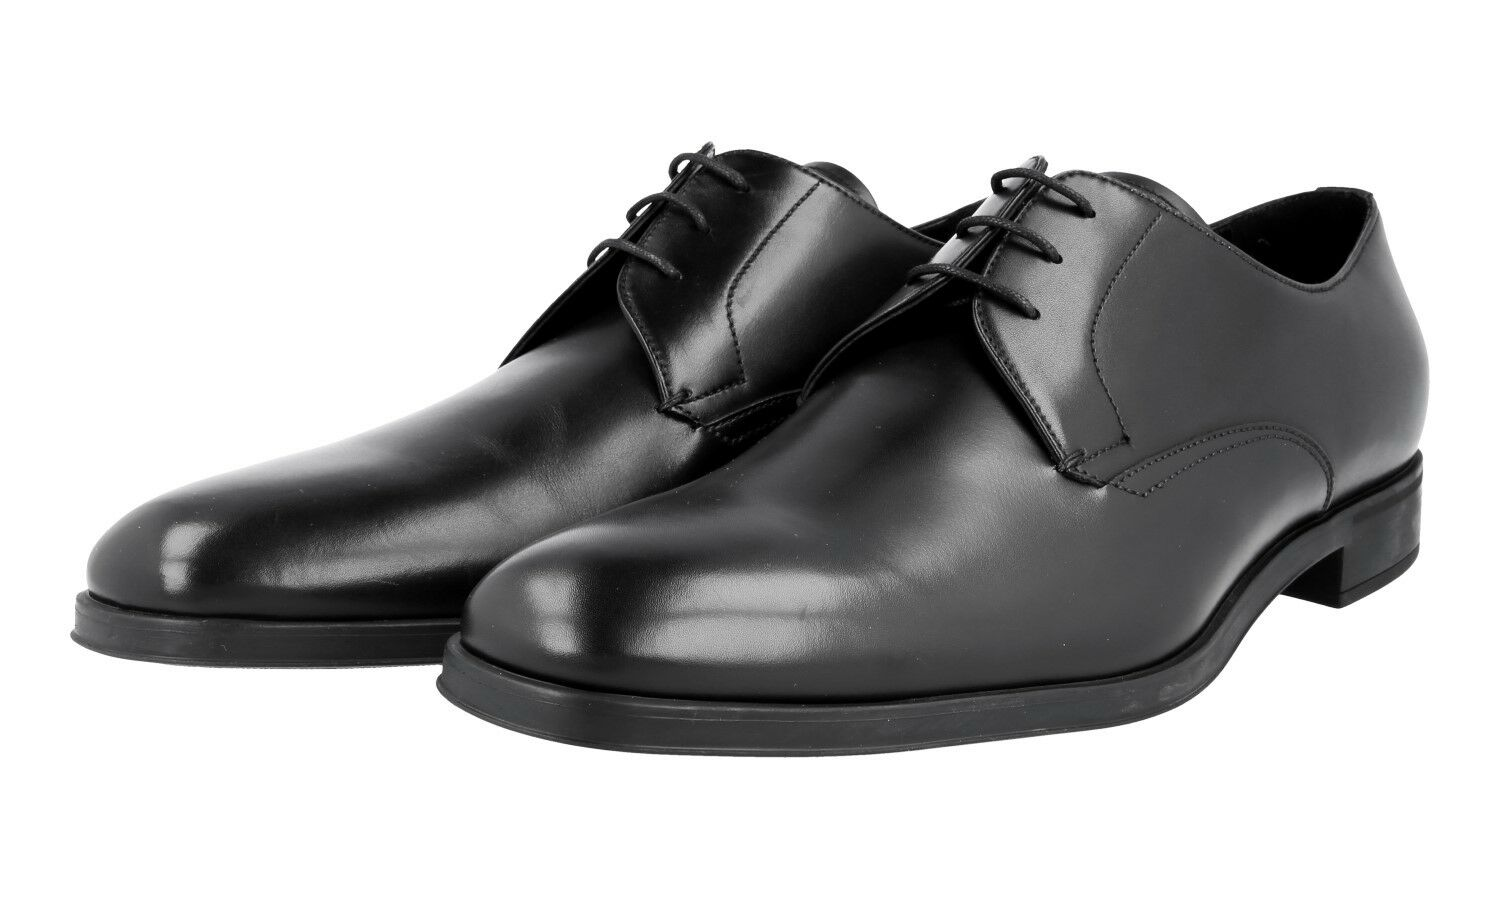 86a1639843a52 Luxe Derby Prada Plain Toe Derby Luxe Chaussures 2ec089 NOIR NEUF NEW 11 45  45,5 378ce8